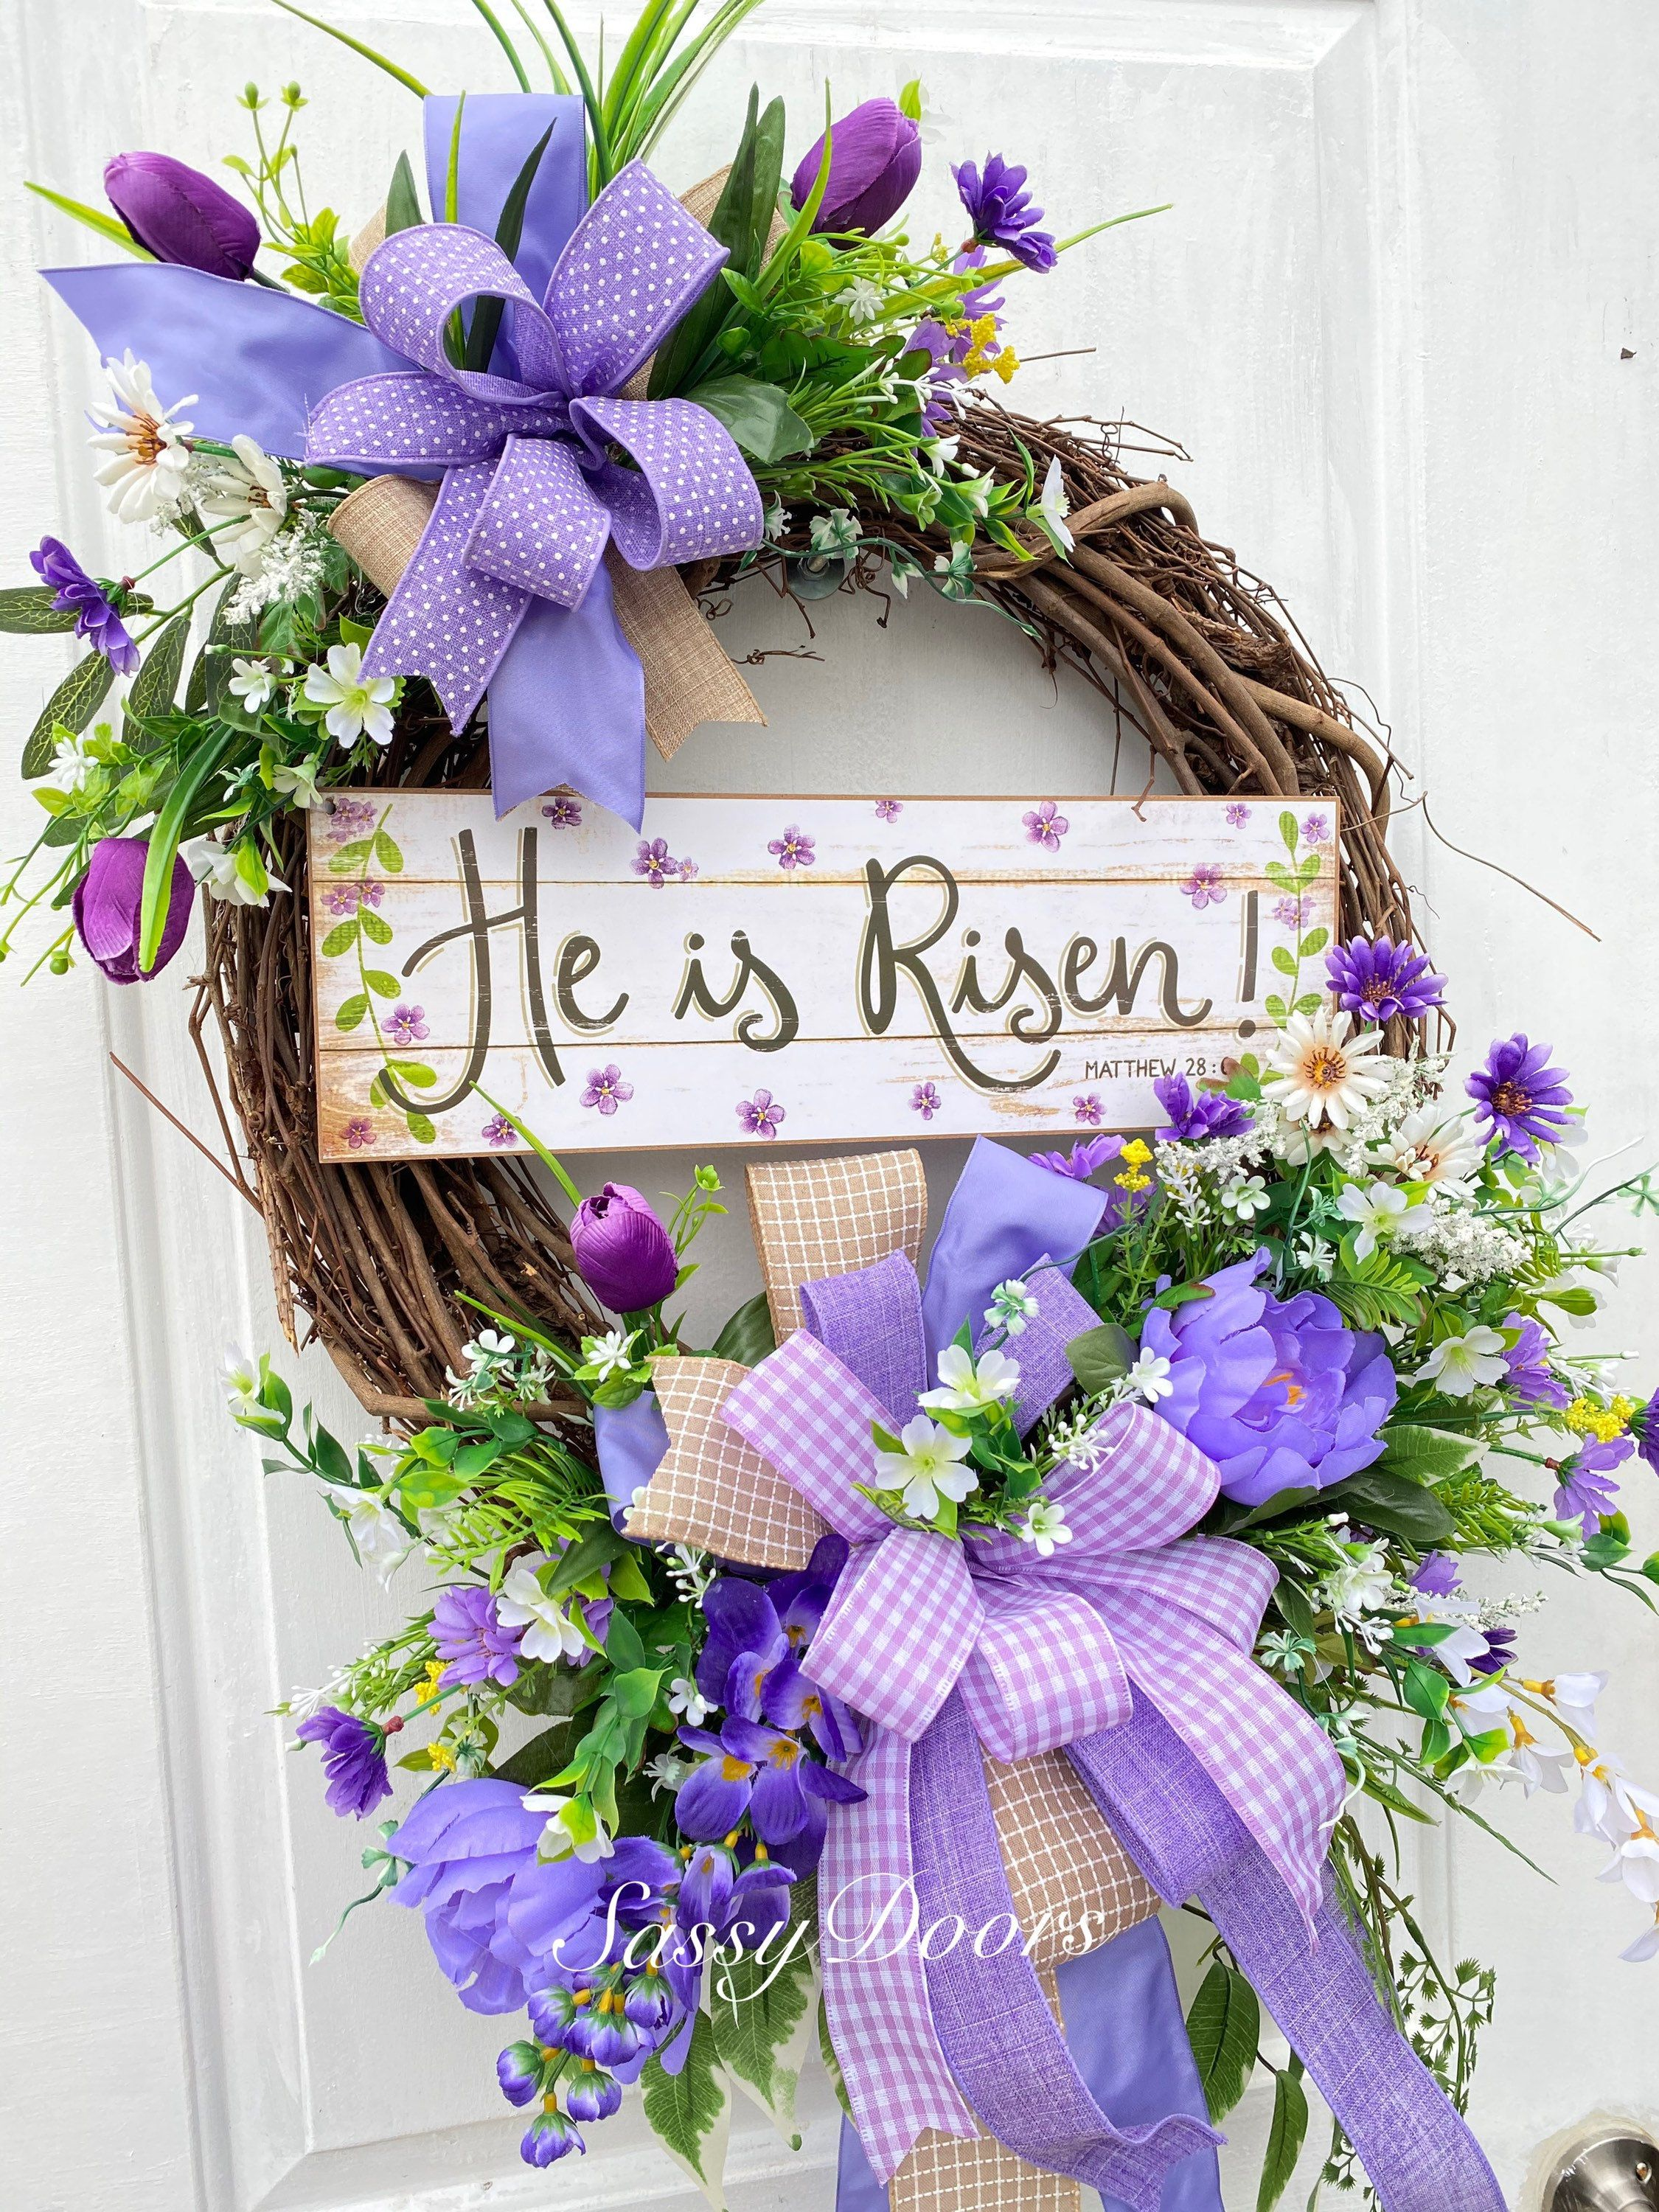 Photo of Easter Wreaths, Easter Religious Wreaths, Spring Wreaths For Front Door, He Is Risen Wreath, Sassy Doors Wreath